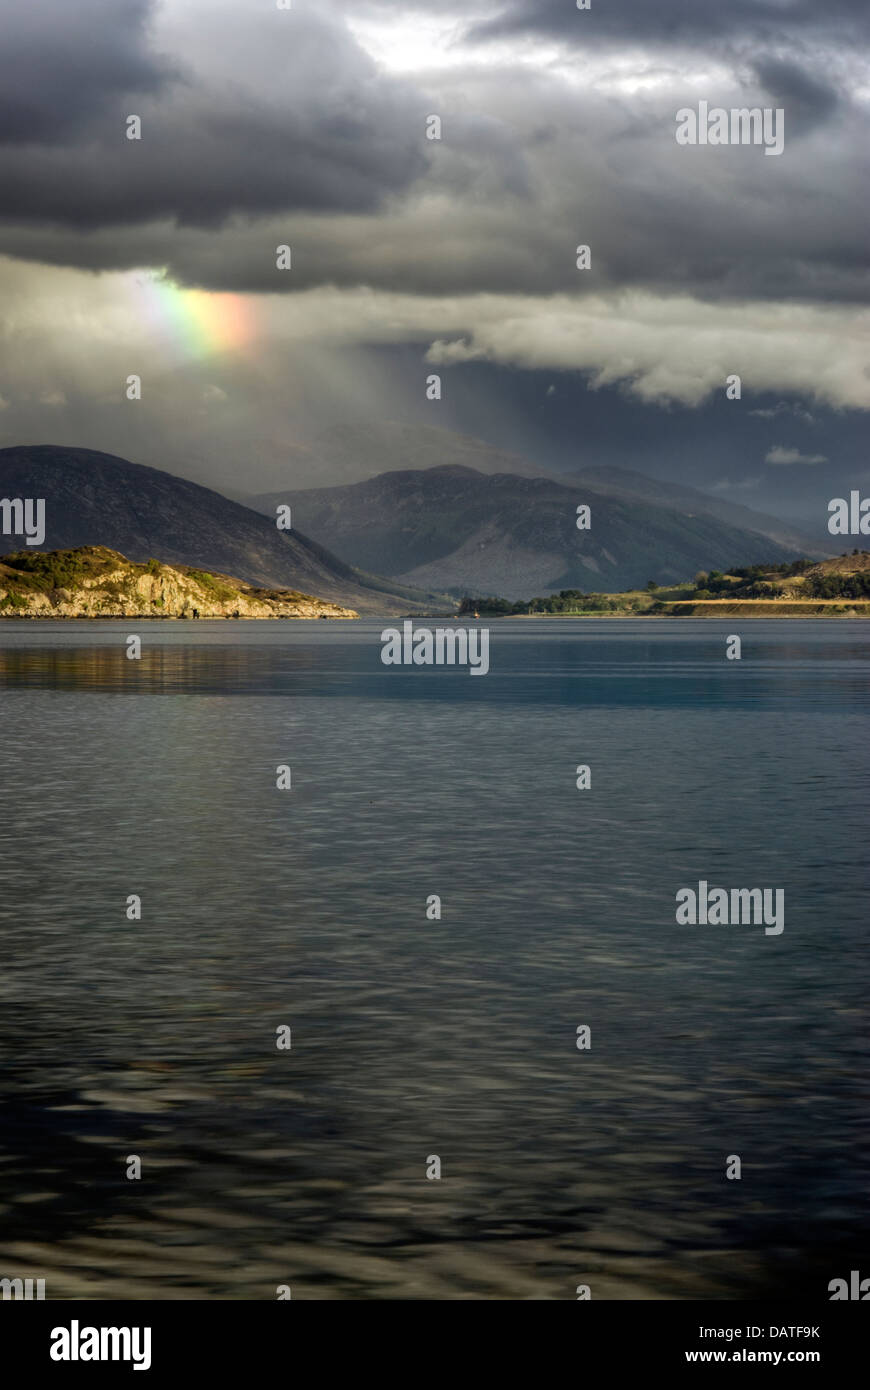 Storm clouds with rainbow over Loch Broom and the Highland mountains from Ullapool. Highlands, Scotland - Stock Image